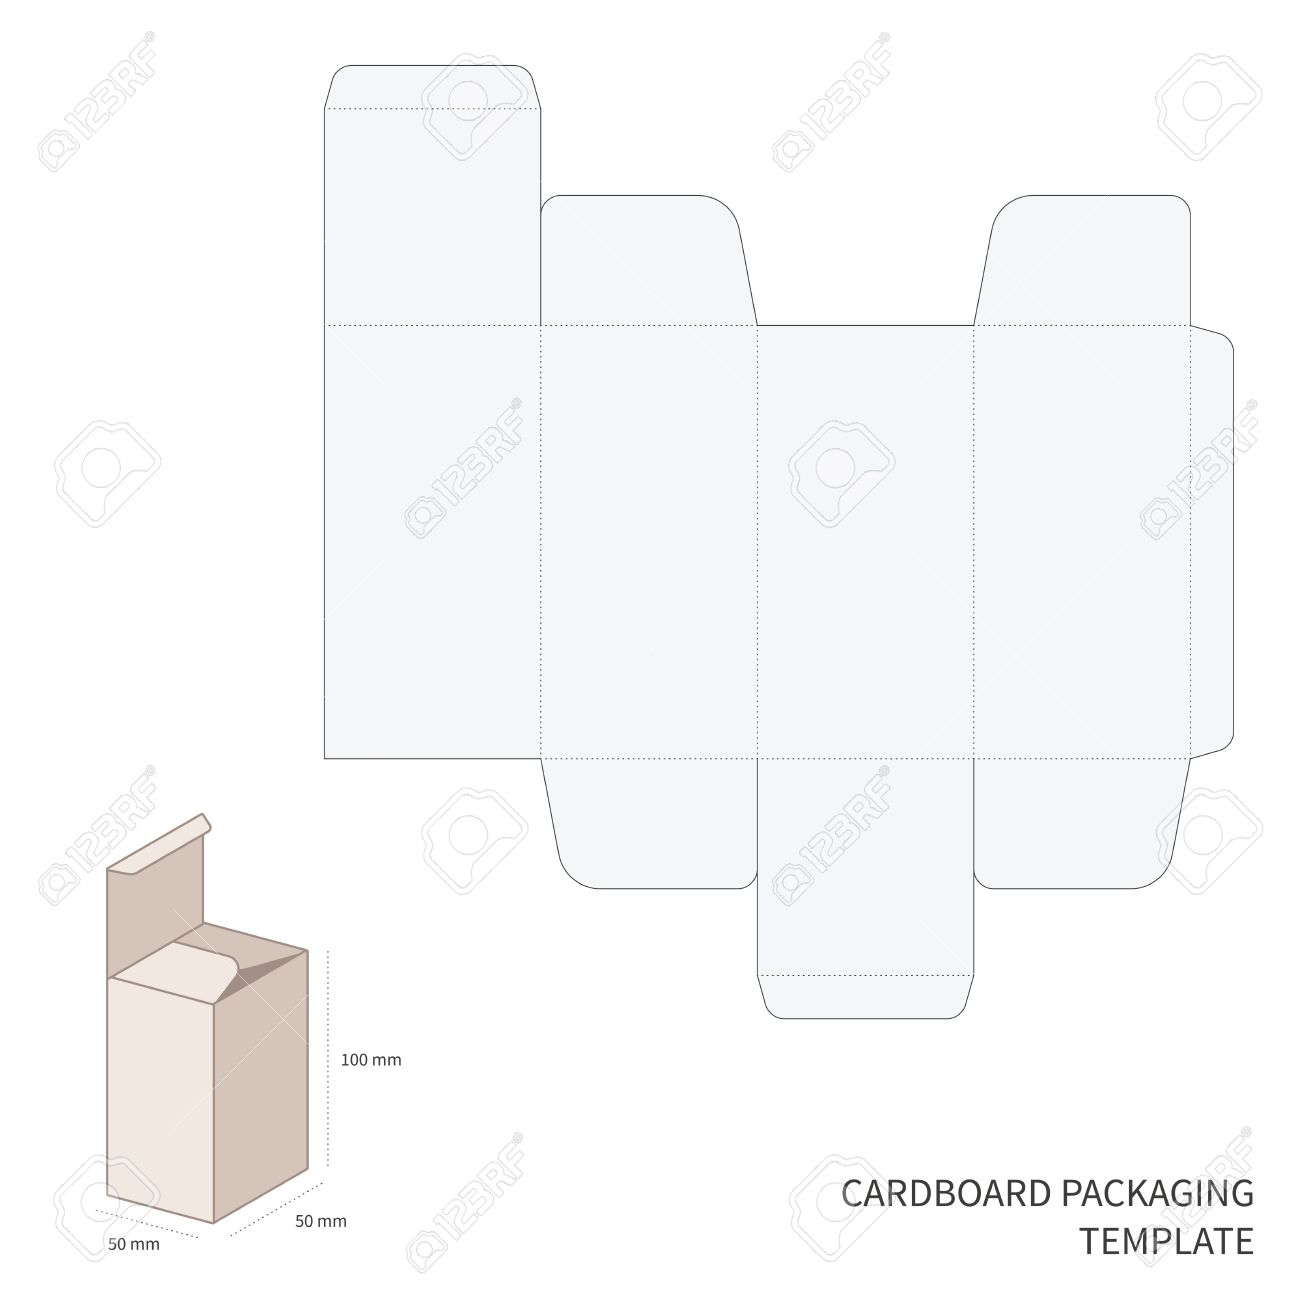 Vector Cardboard Packaging Template With Cutting And Bending.